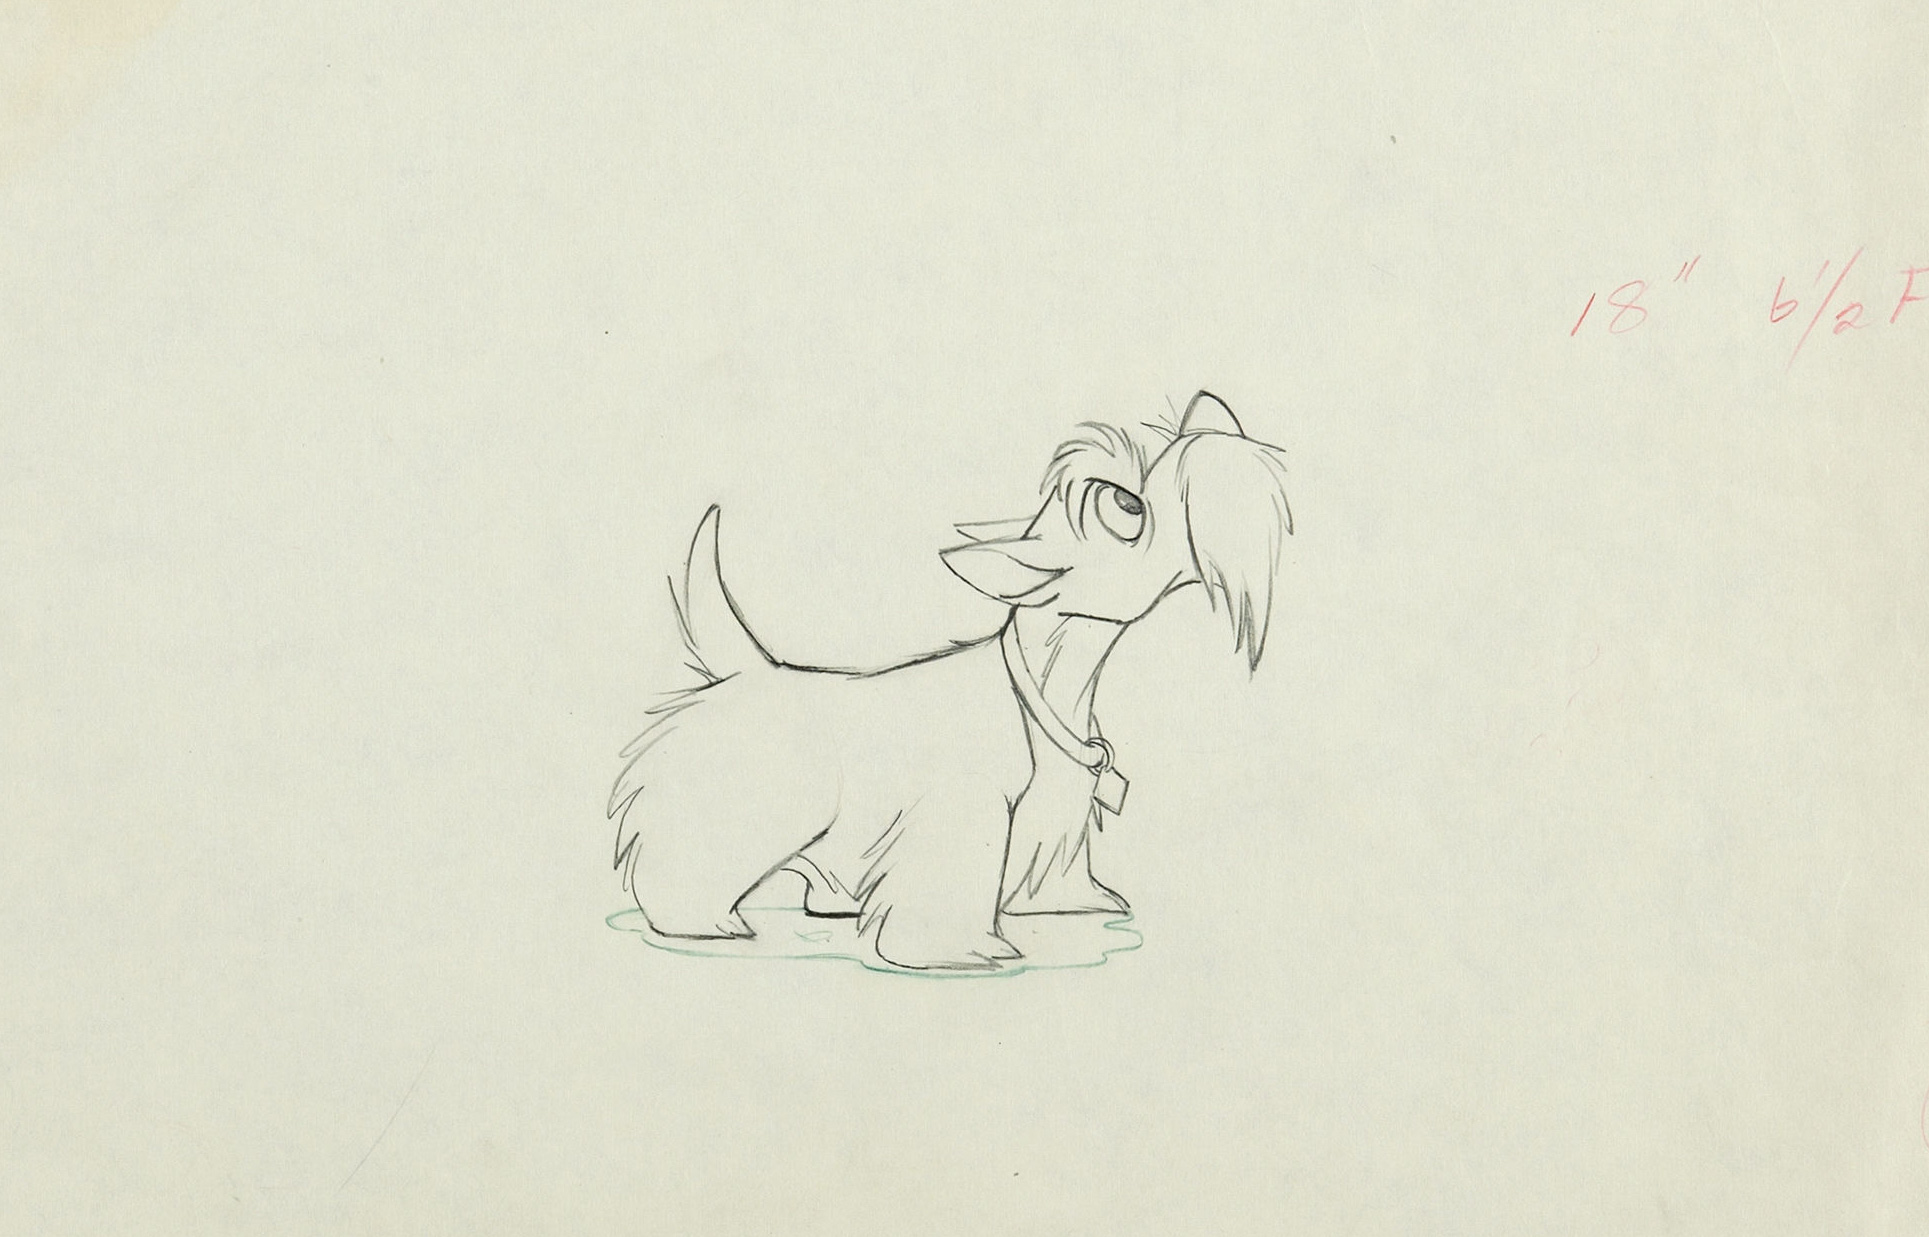 lady_and_the_tramp_disney_production_art_27.jpg